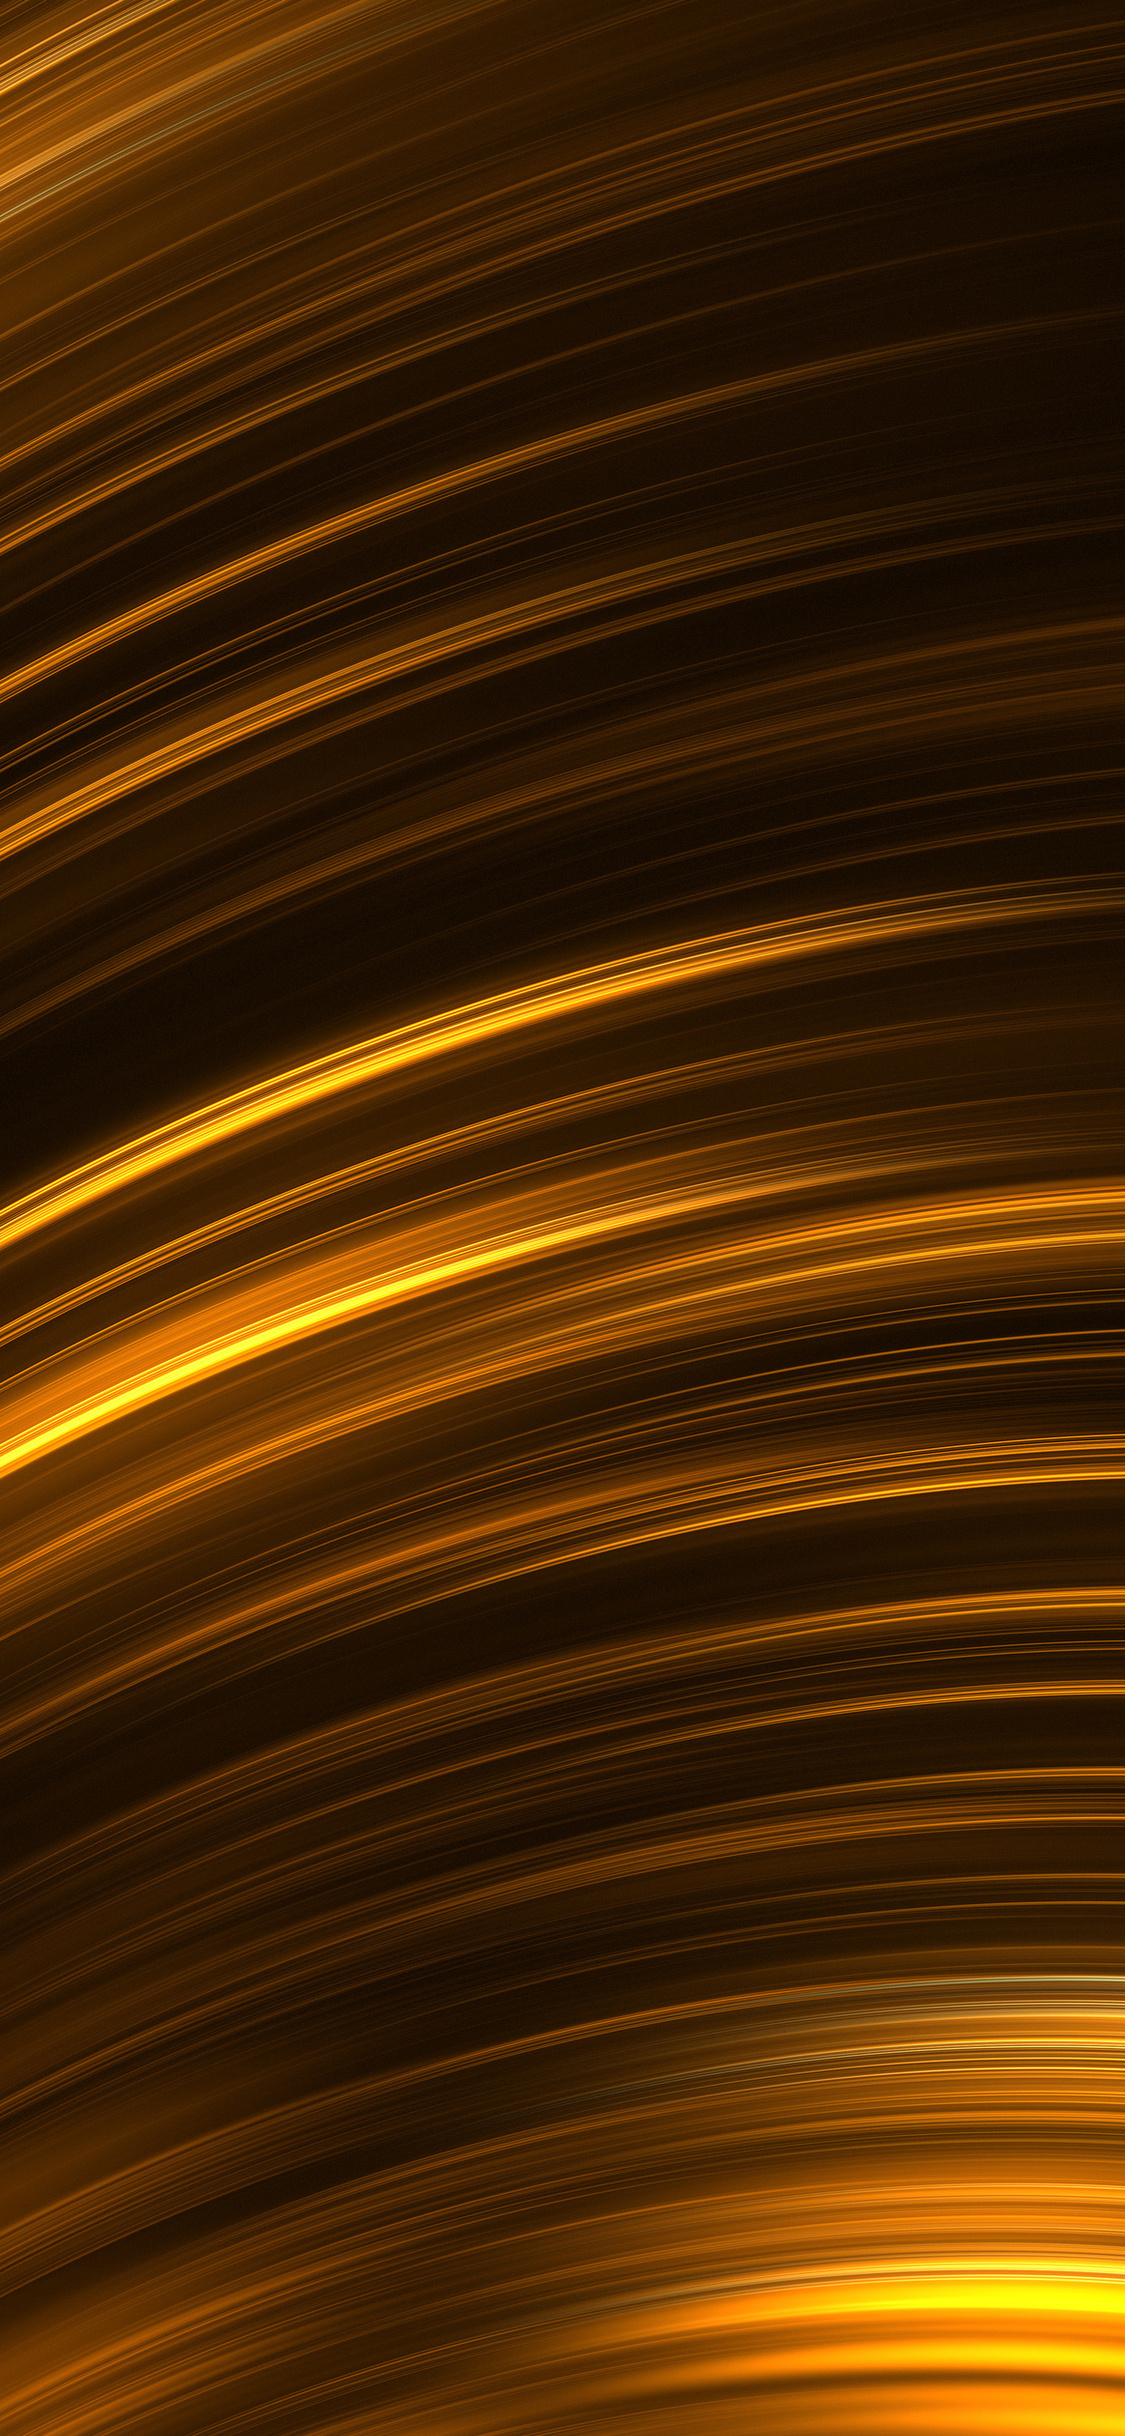 1125x2436 Gold Black Lines 3d Abstract 5k Iphone Xs Iphone 10 Iphone X Hd 4k Wallpapers Images Backgrounds Photos And Pictures